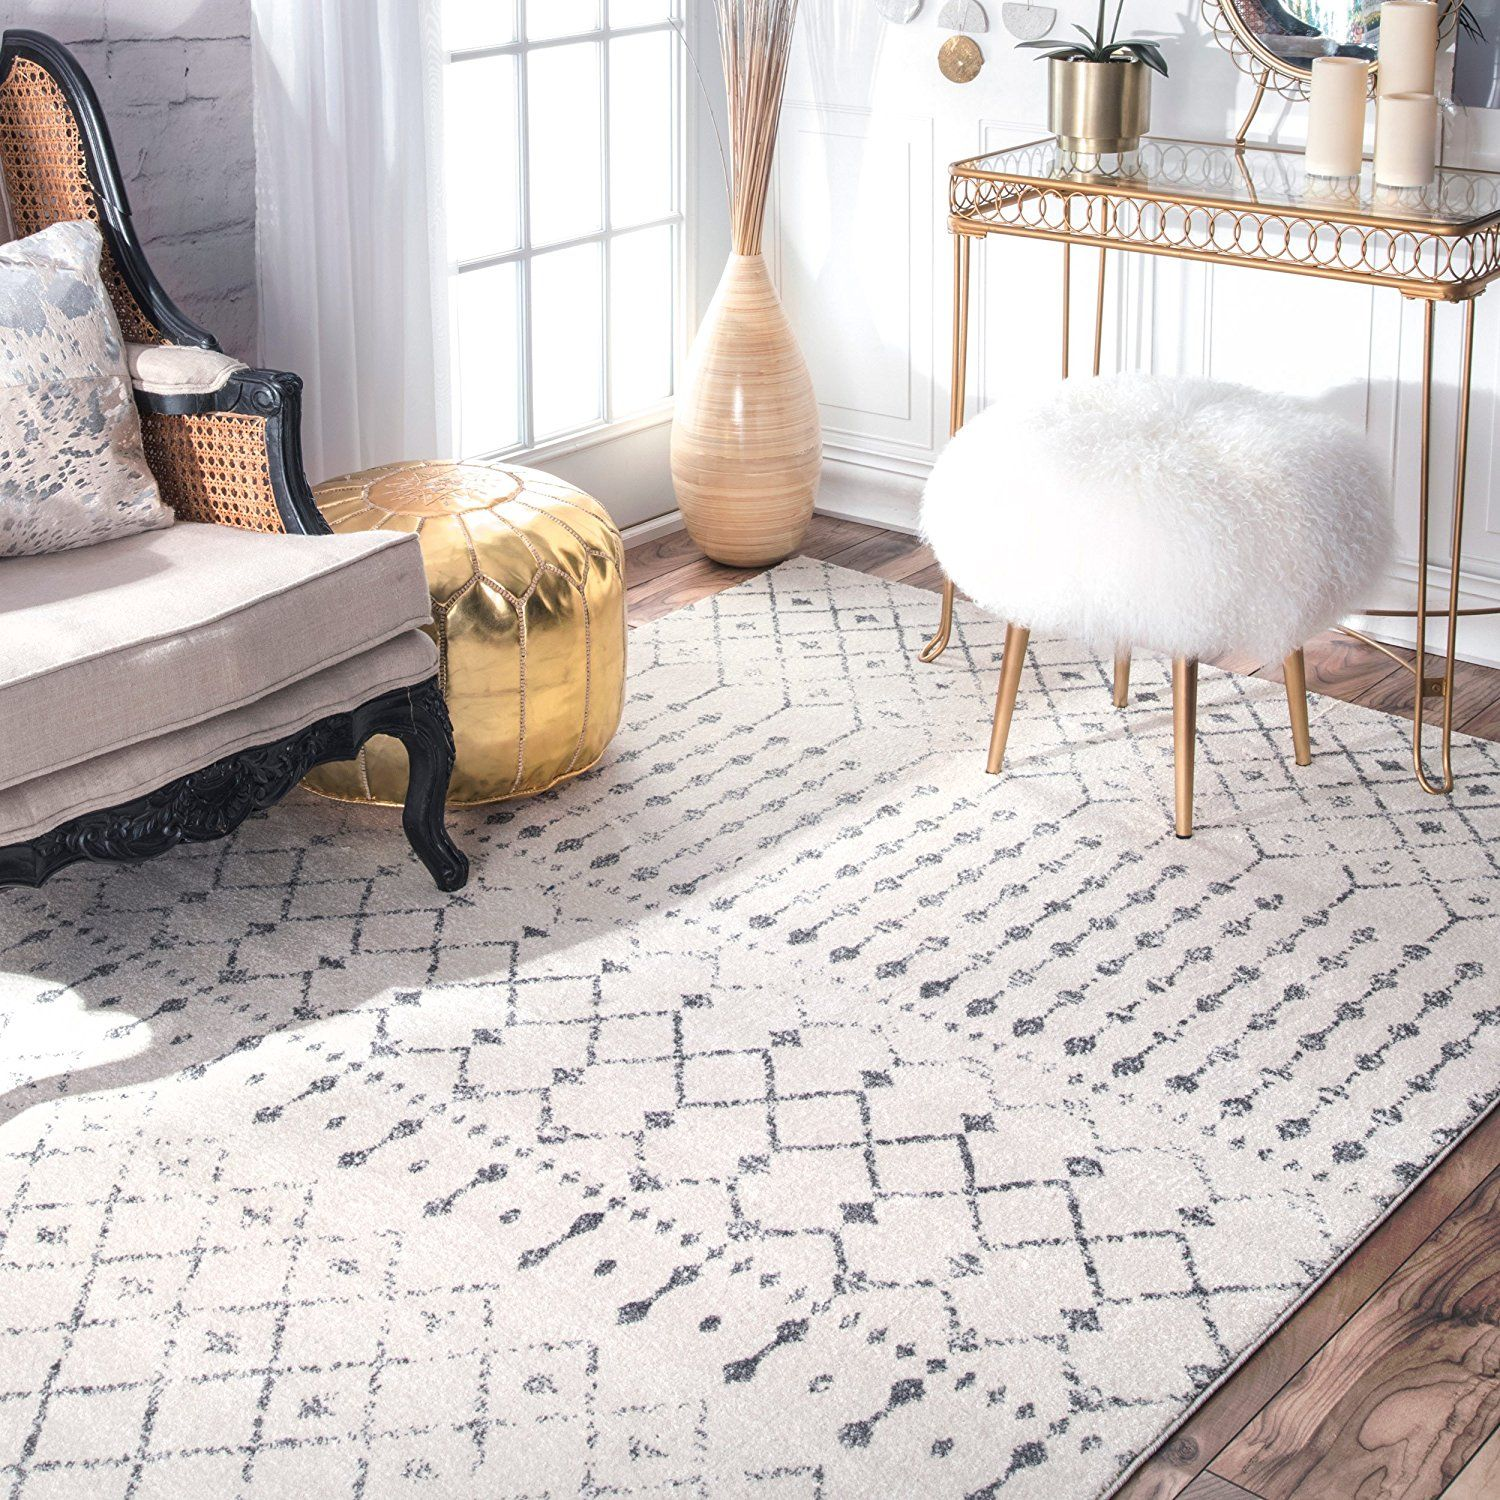 Find the perfect farmhouse style rug grey and white rug